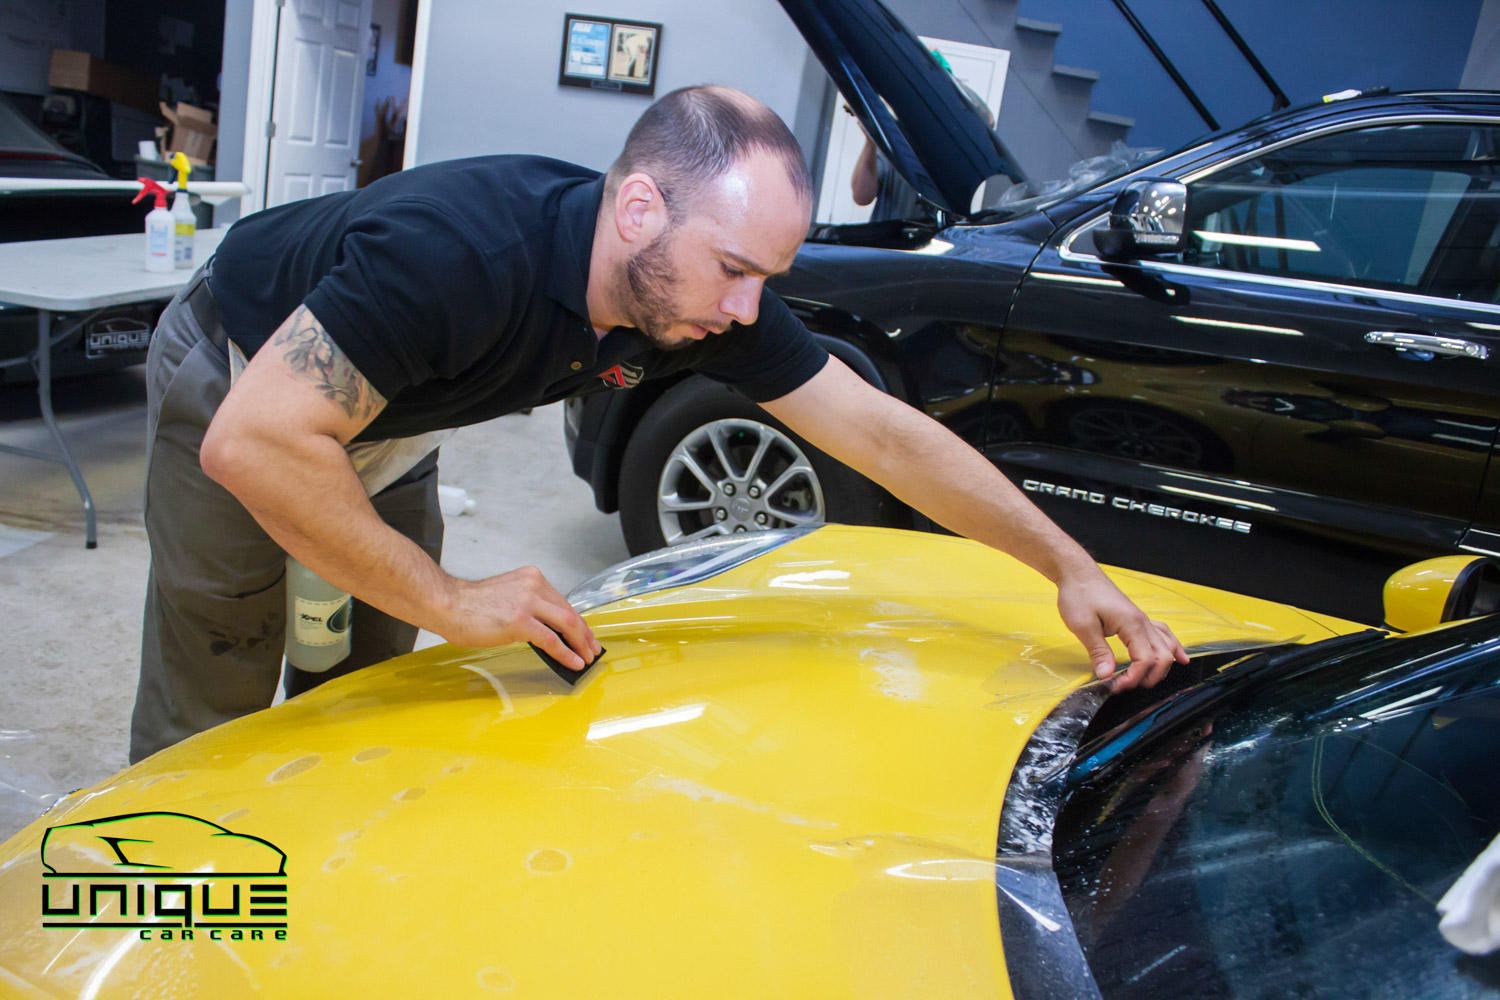 Automotive stone chip protection film Boston